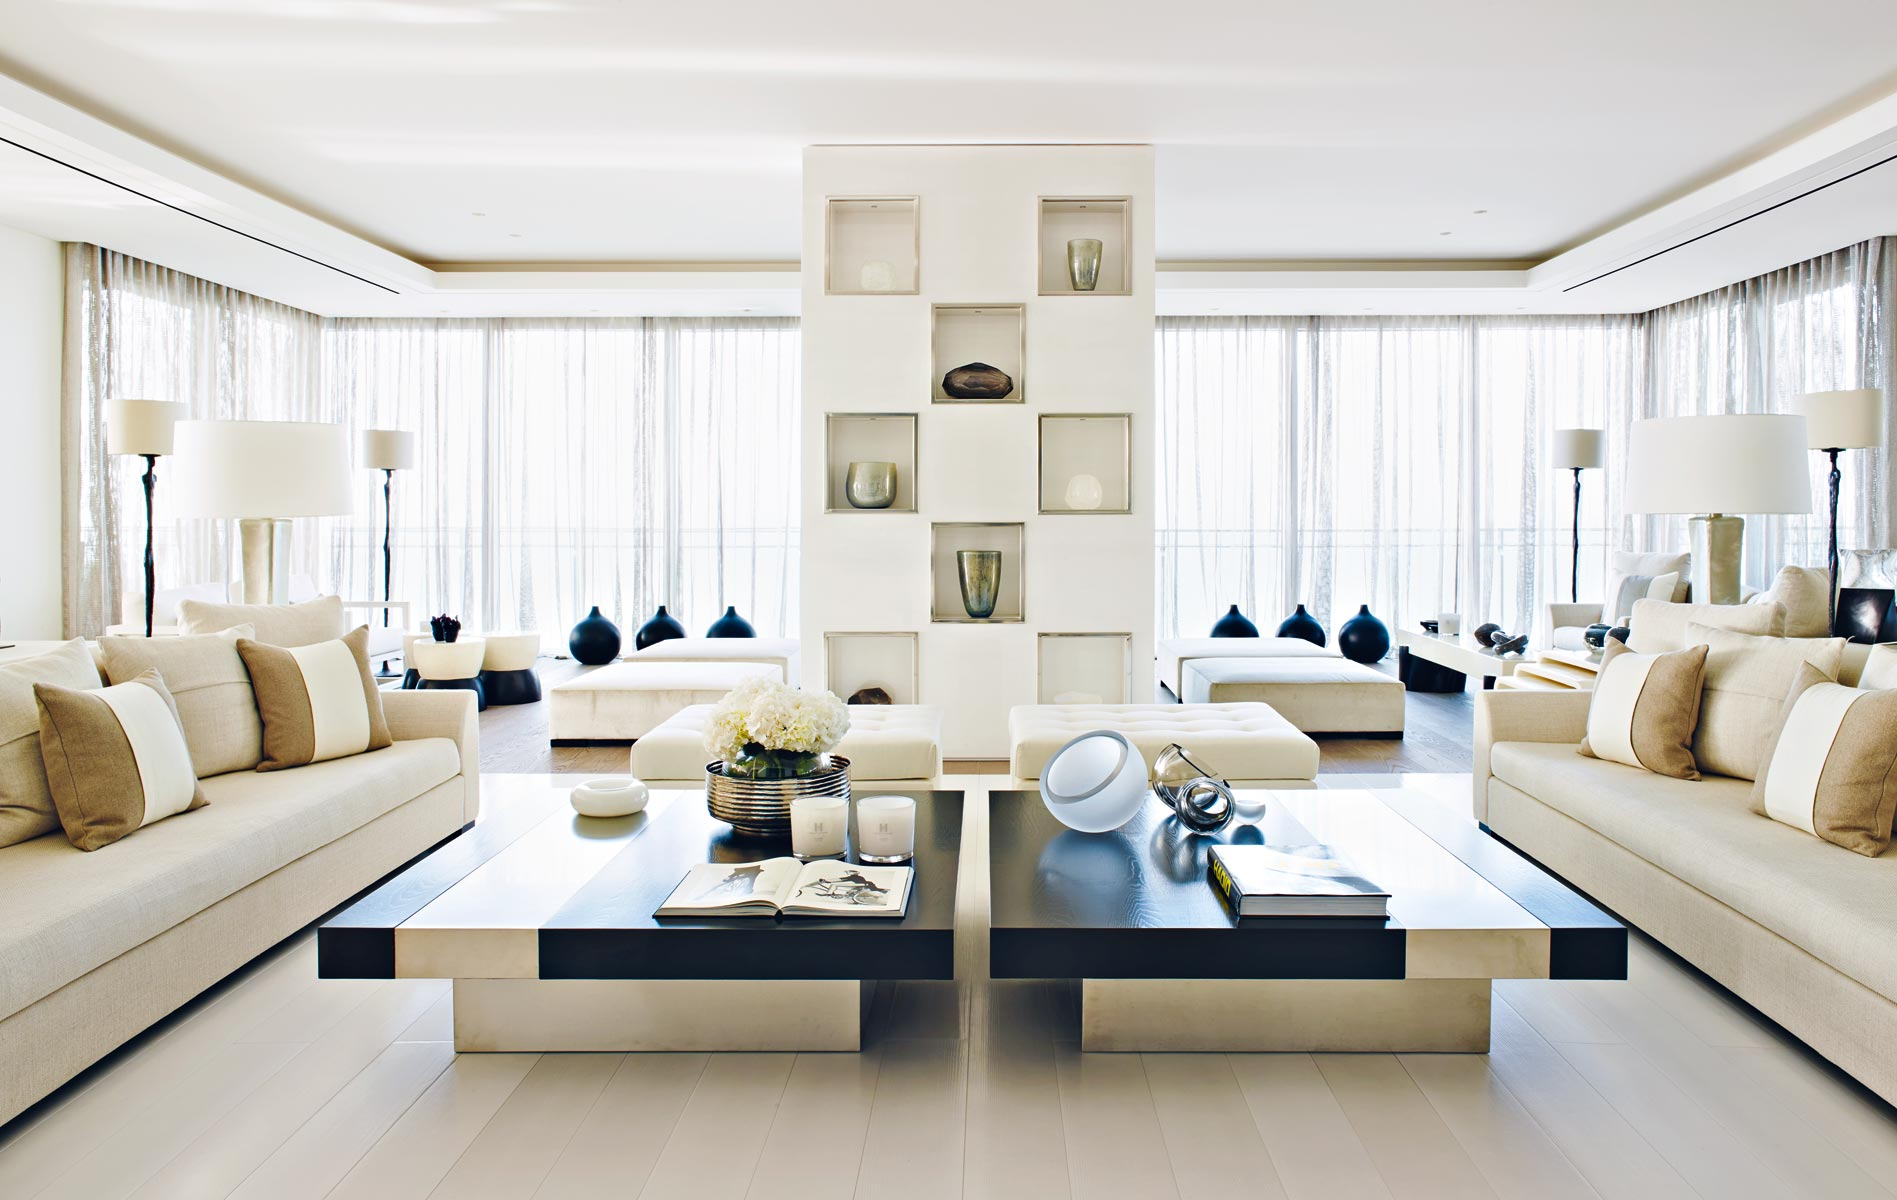 Top 10 kelly hoppen design ideas Beautiful interior home designs